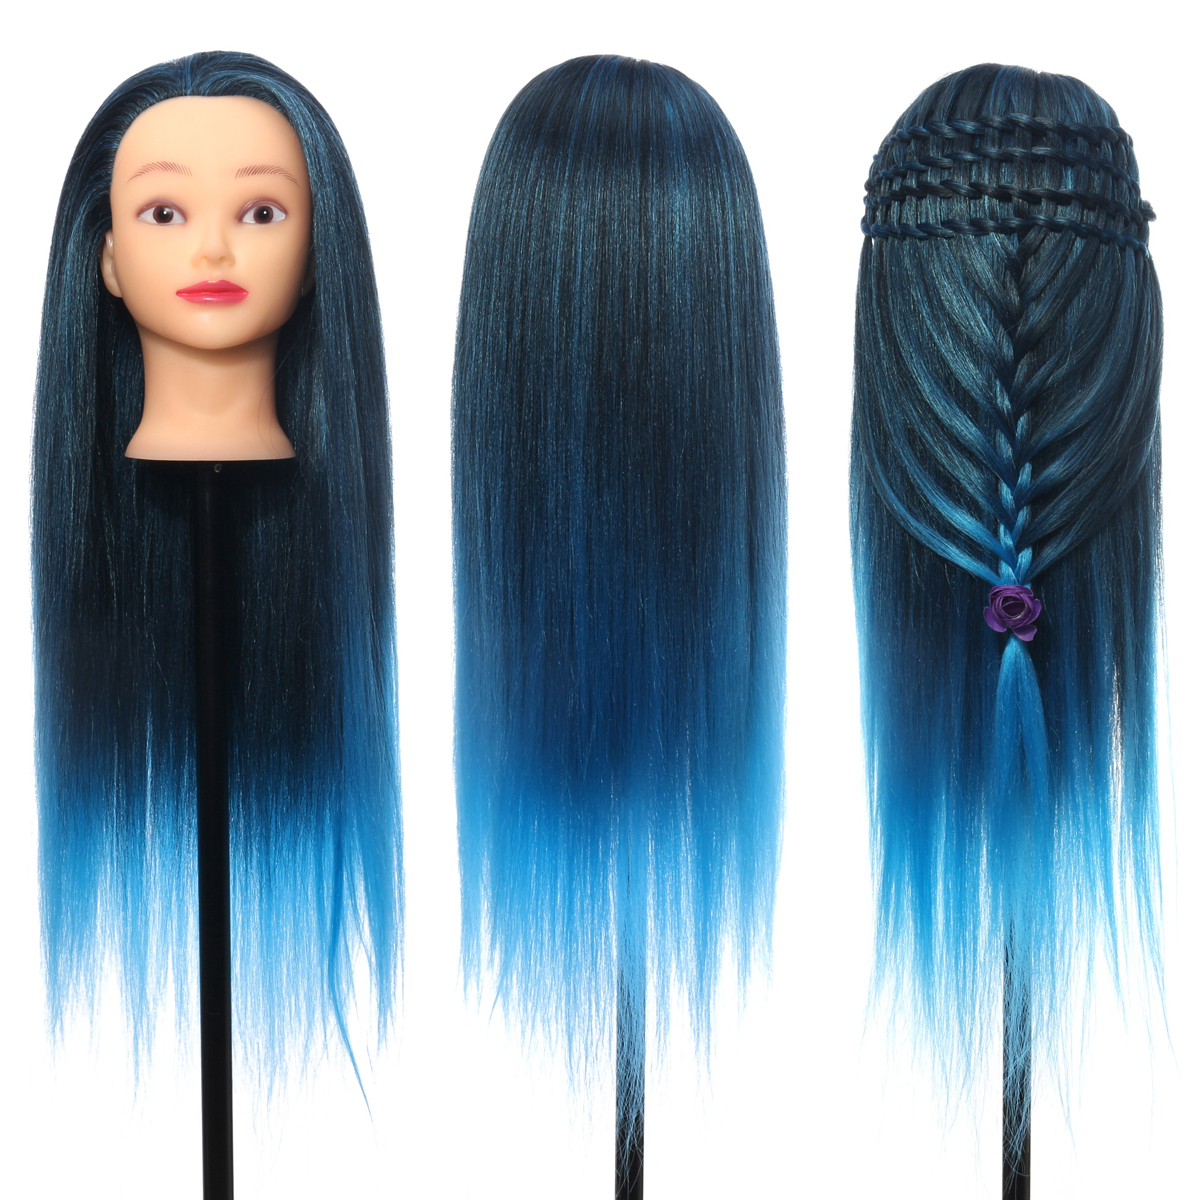 26'' Colorful Hair Hairdressing Practice Training